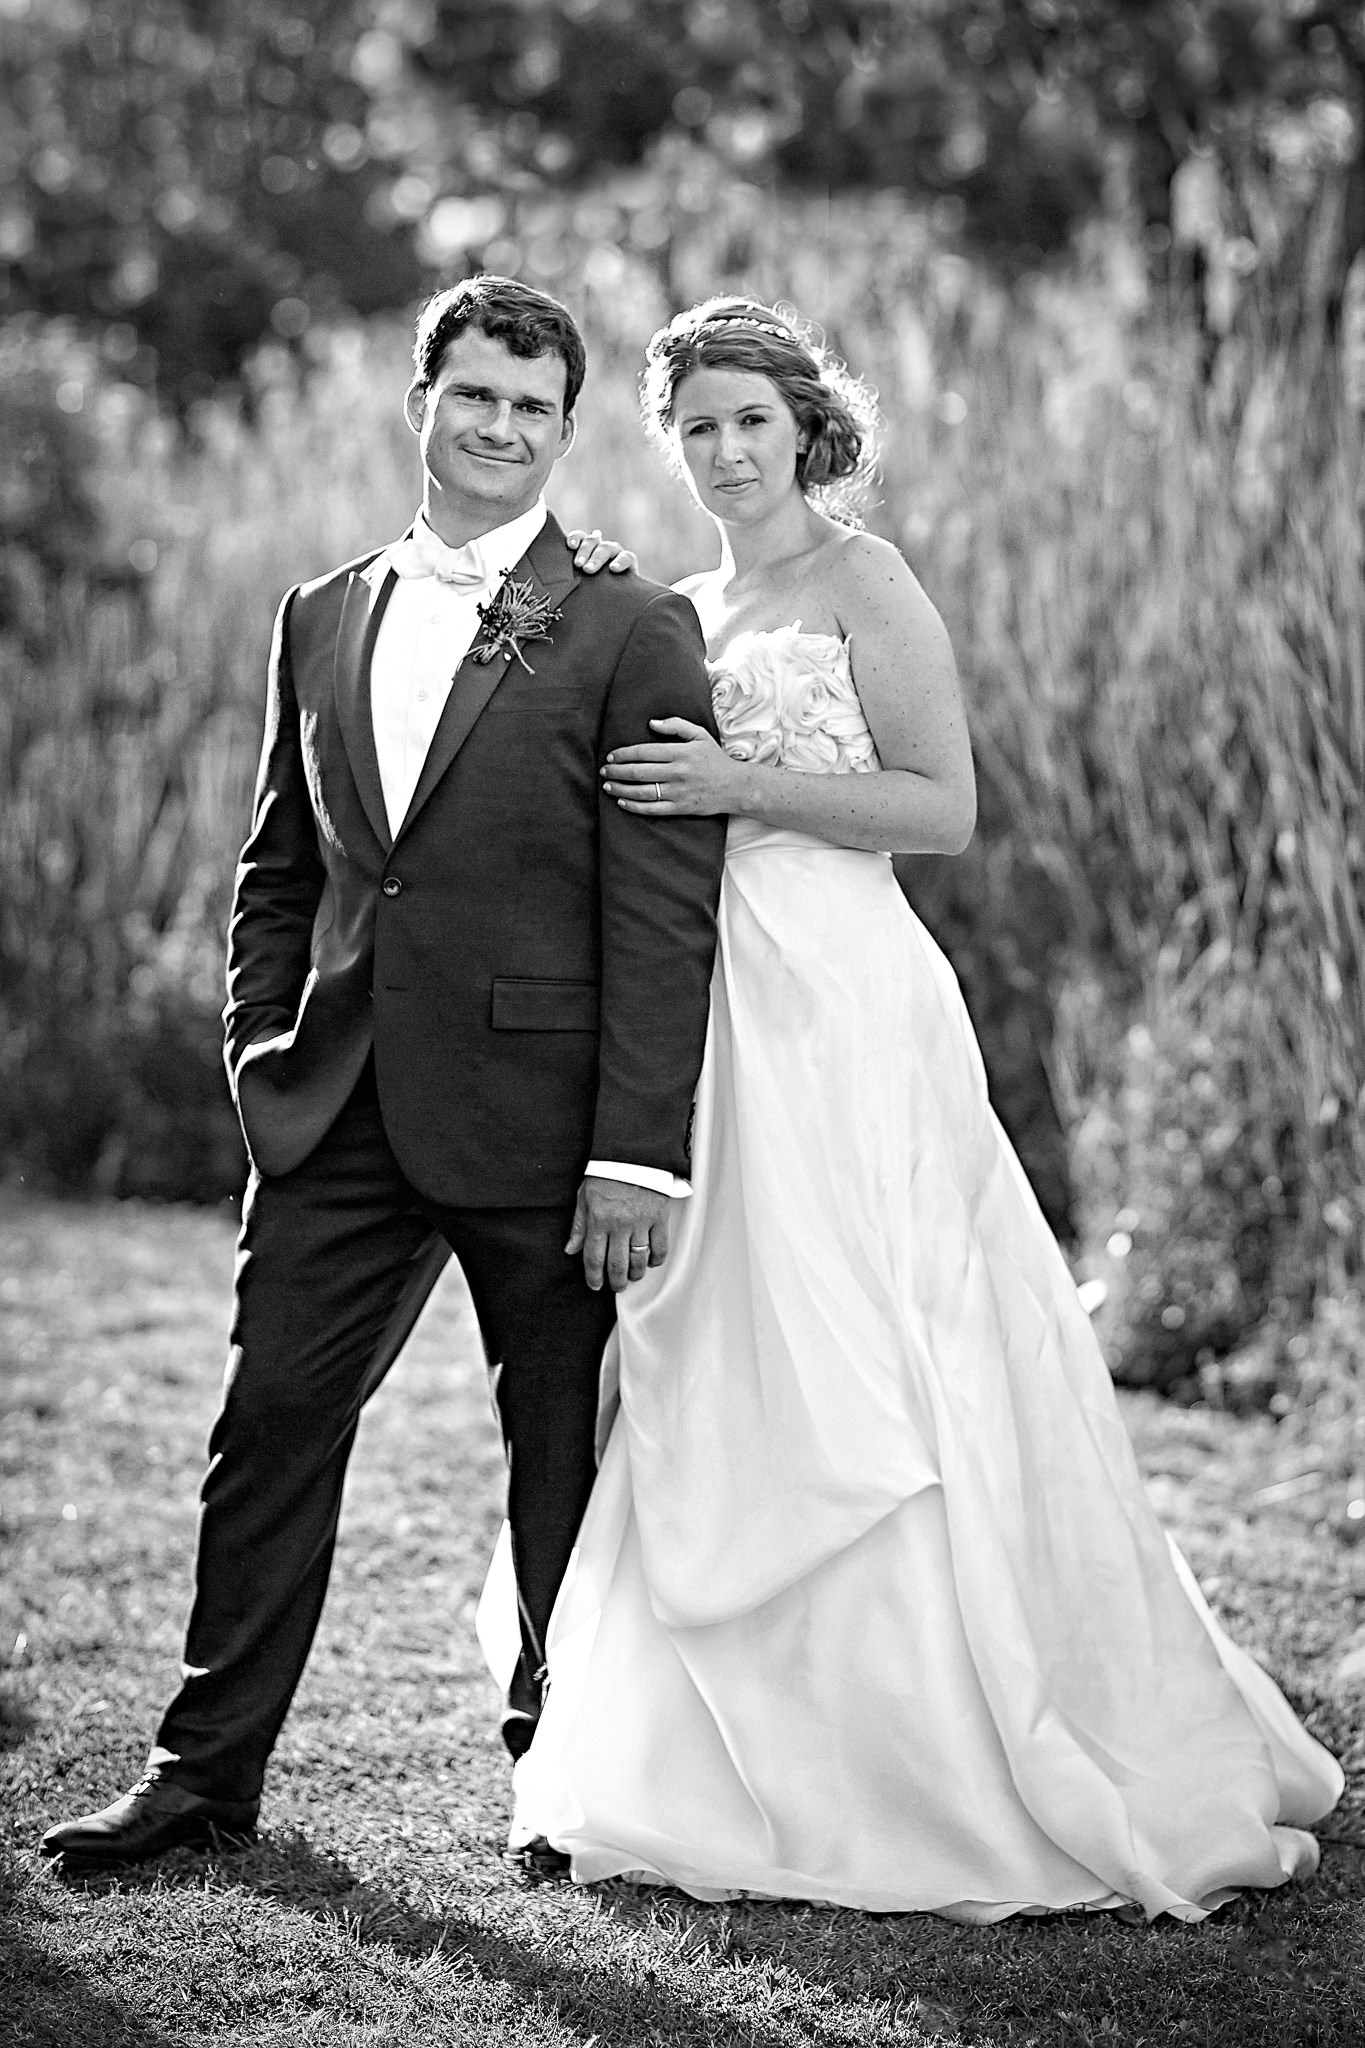 oyster farm weddings wedding photographers & williamsburg fine art wedding photographer wedding gallery